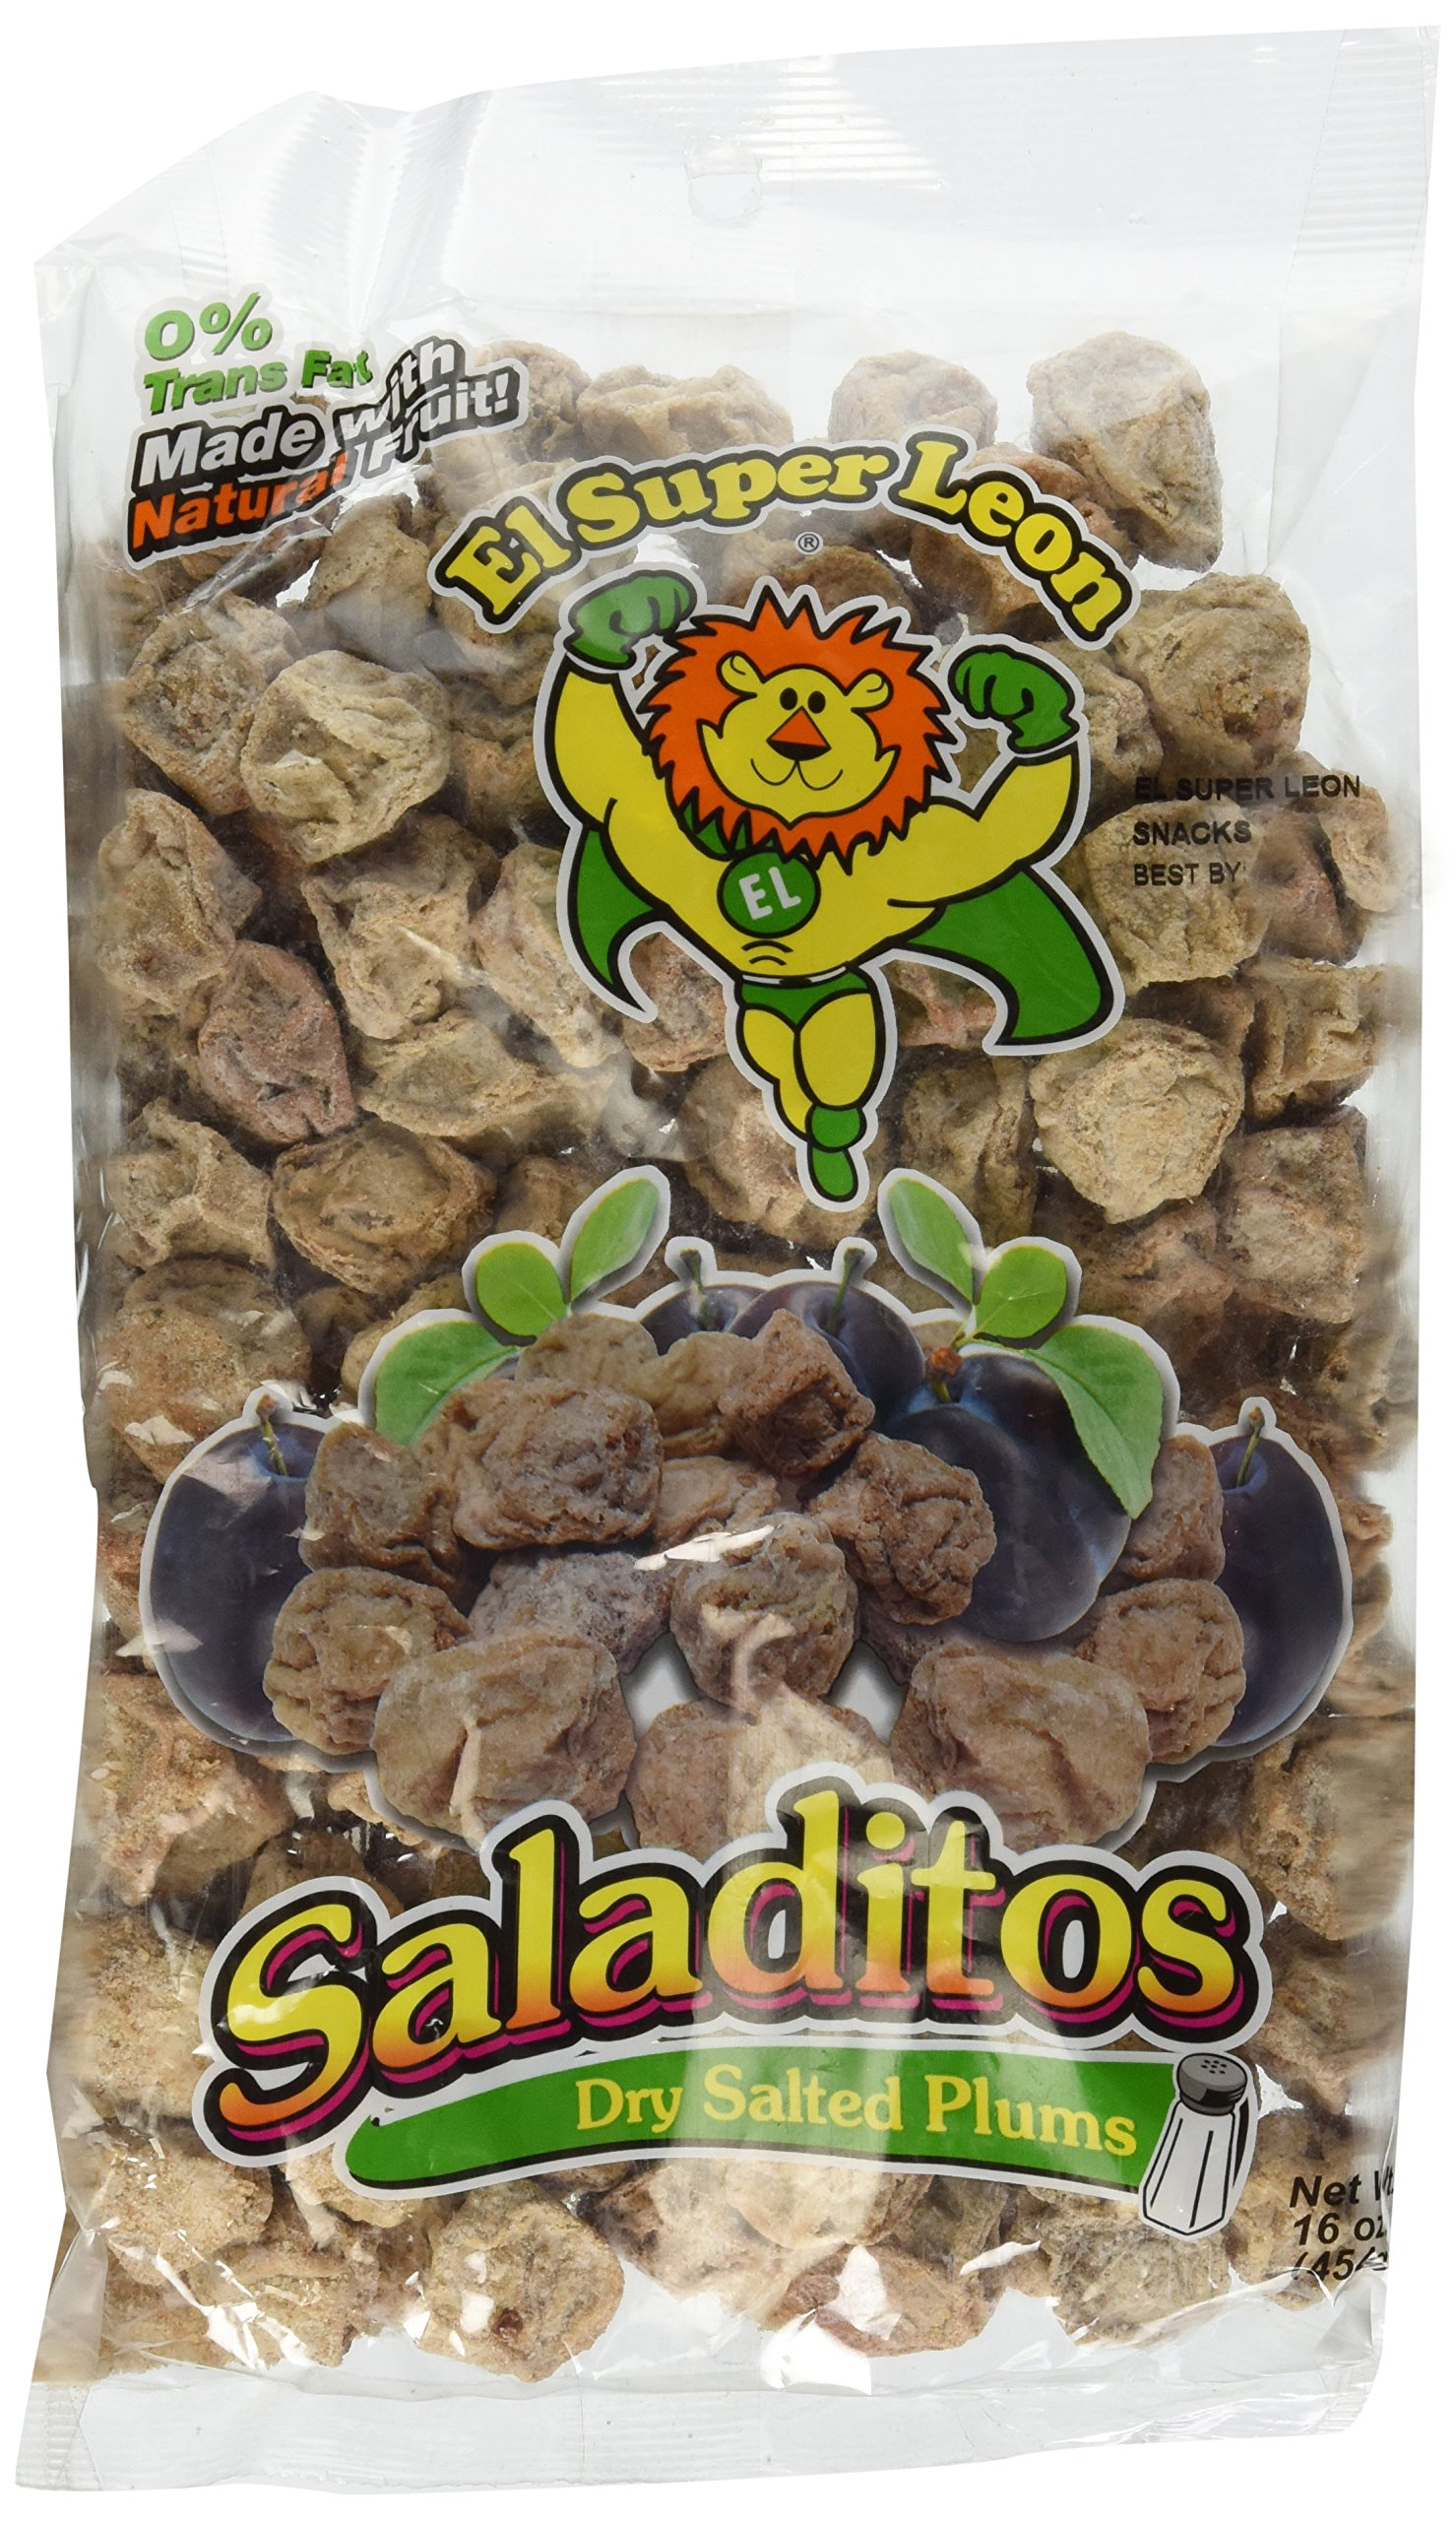 Saladitos Con Sal (Dry Salted Plums) 16oz Bag